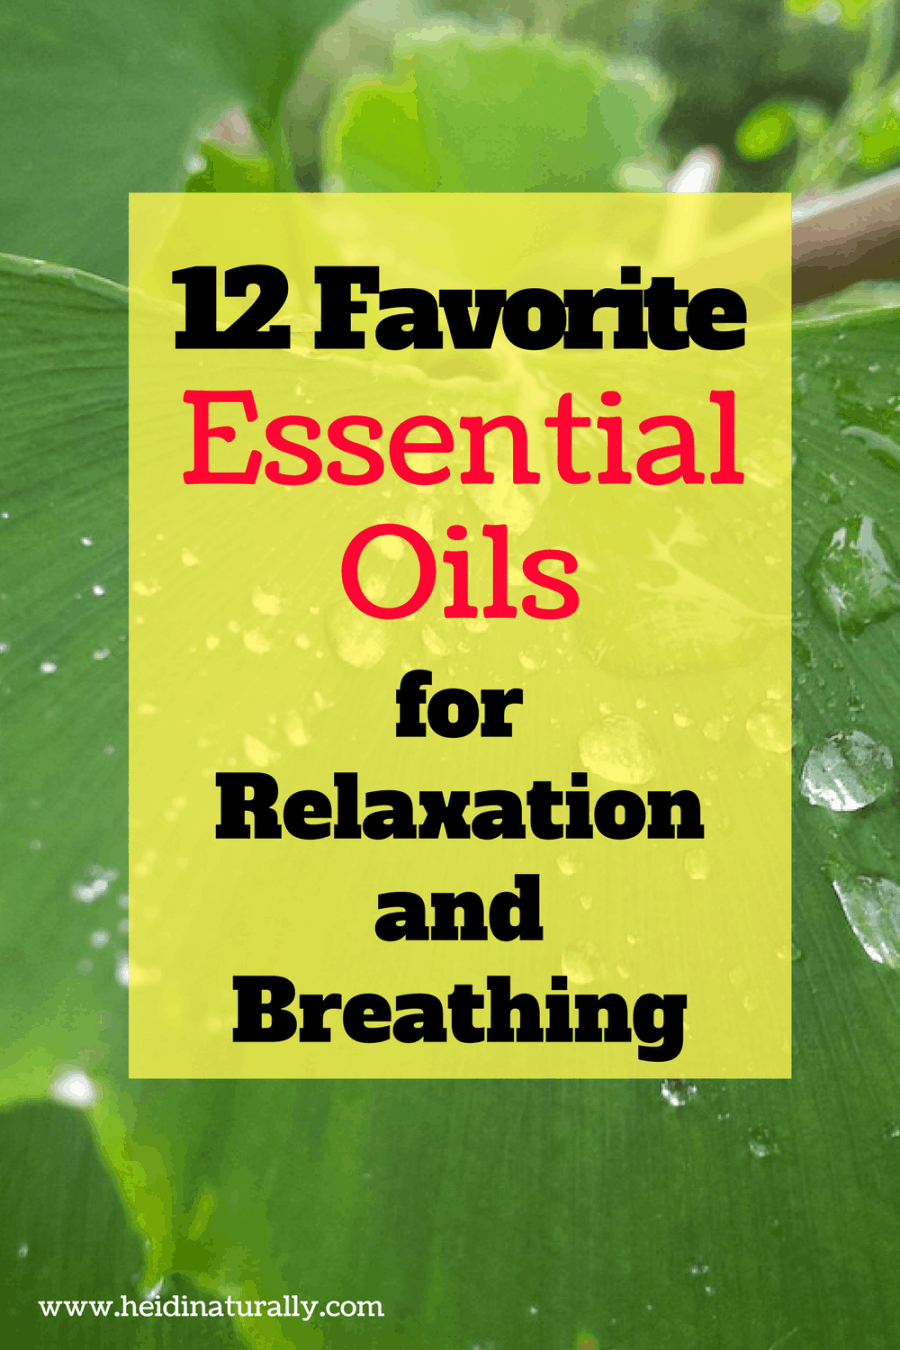 relaxation and breathing http://heidinaturally.com/2018/01/01/favorite-essential-oils-diffuse-relaxation-breathing/